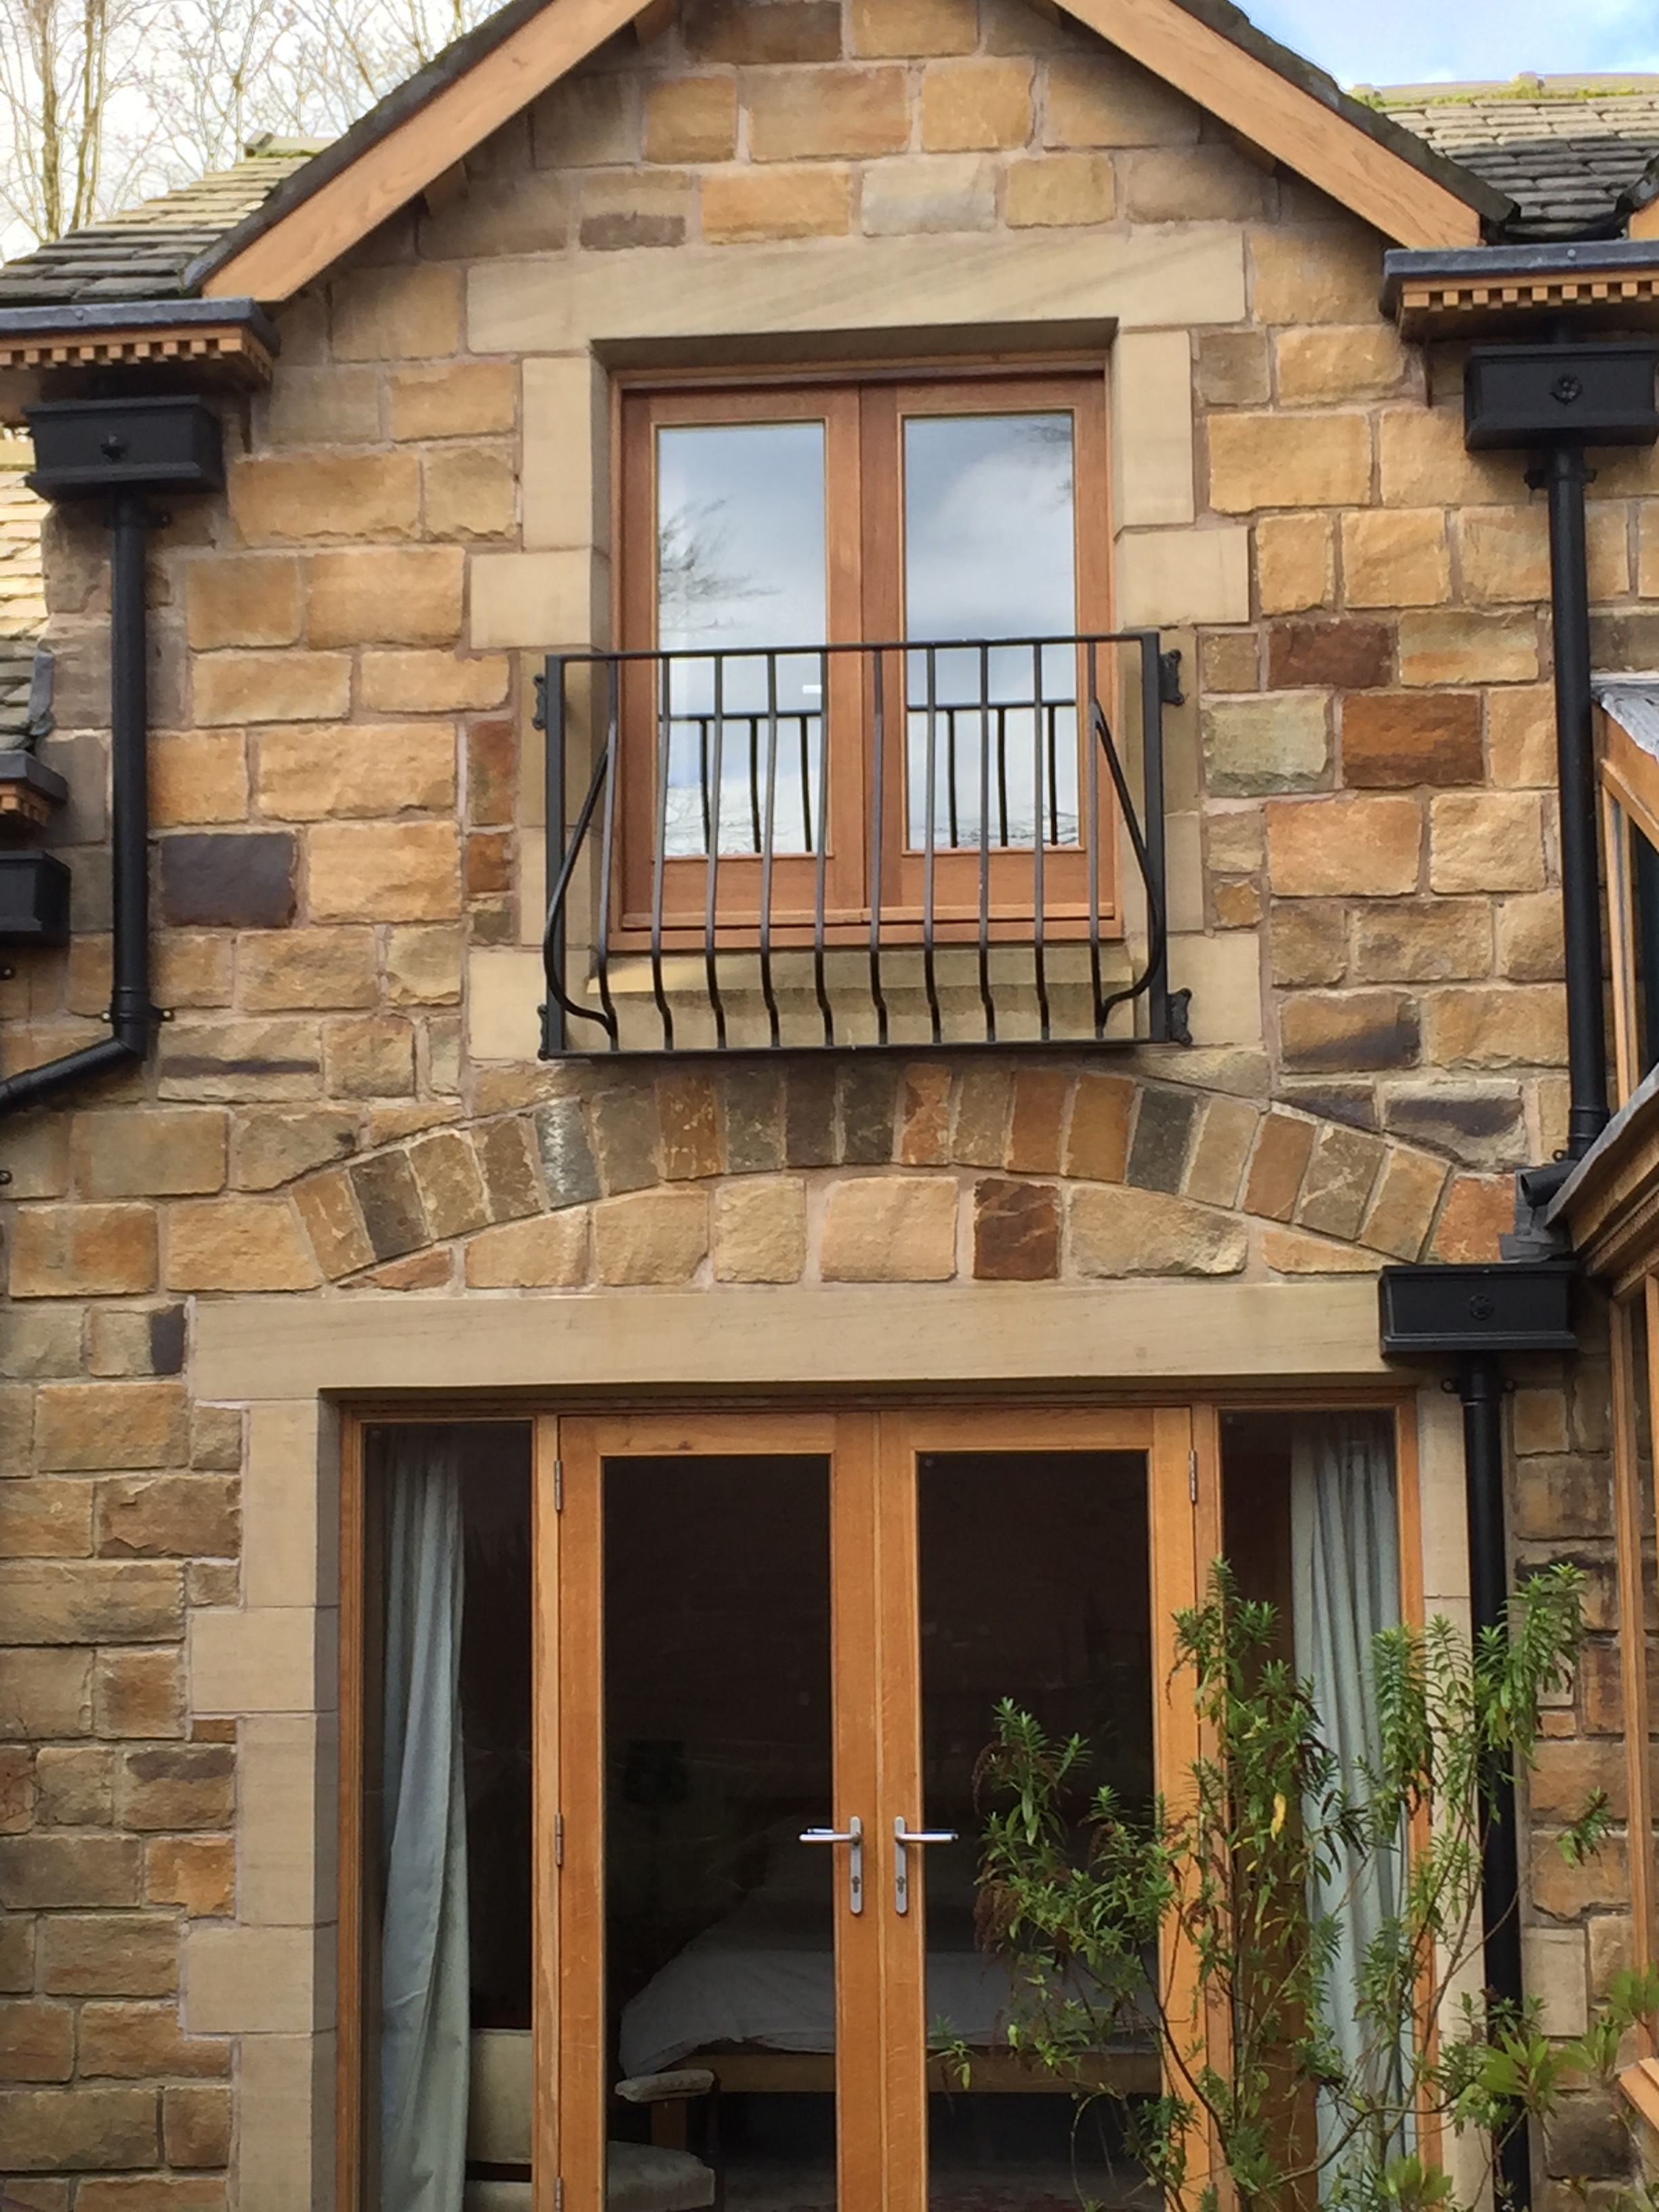 Juliette Balcony with Matching Railings and Gates in Lymm